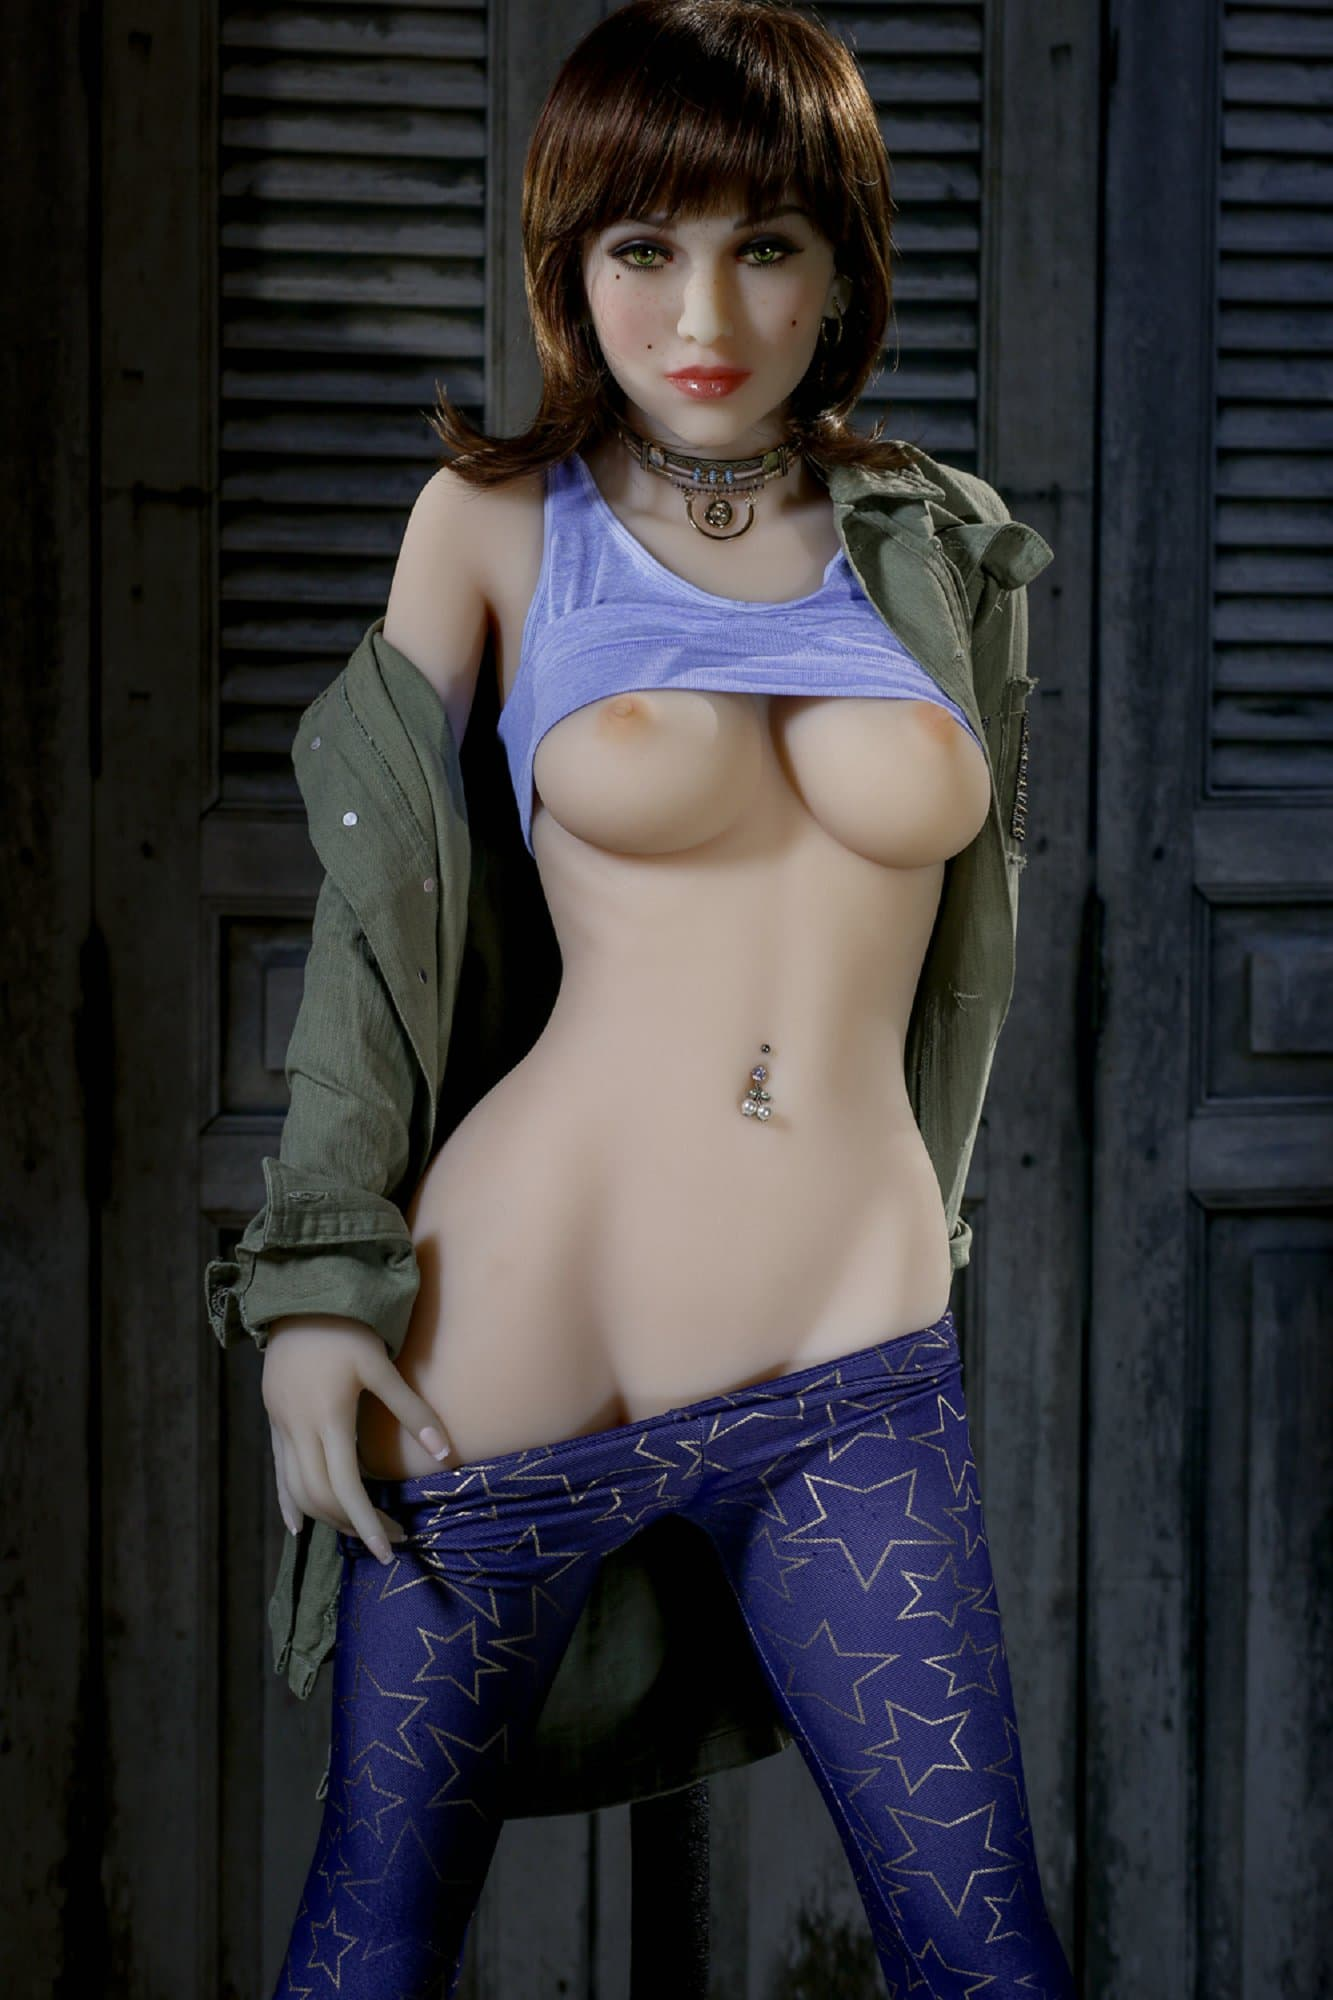 bernadette 155cm brown hair medium tits athletic tpe yl sex doll(8)